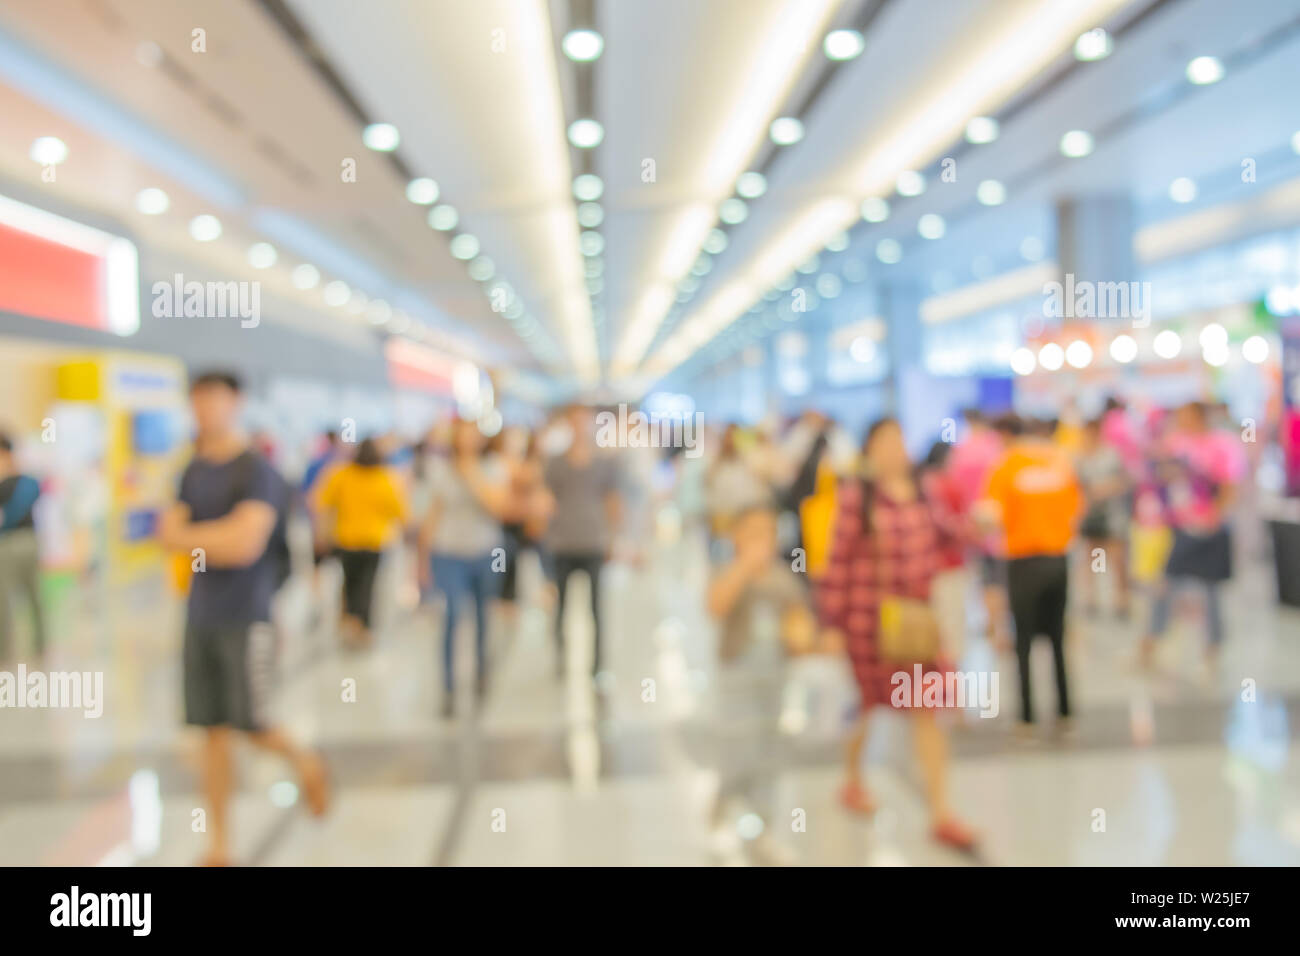 Abstract blurred background of people walking around modern interior building in the city. - Stock Image